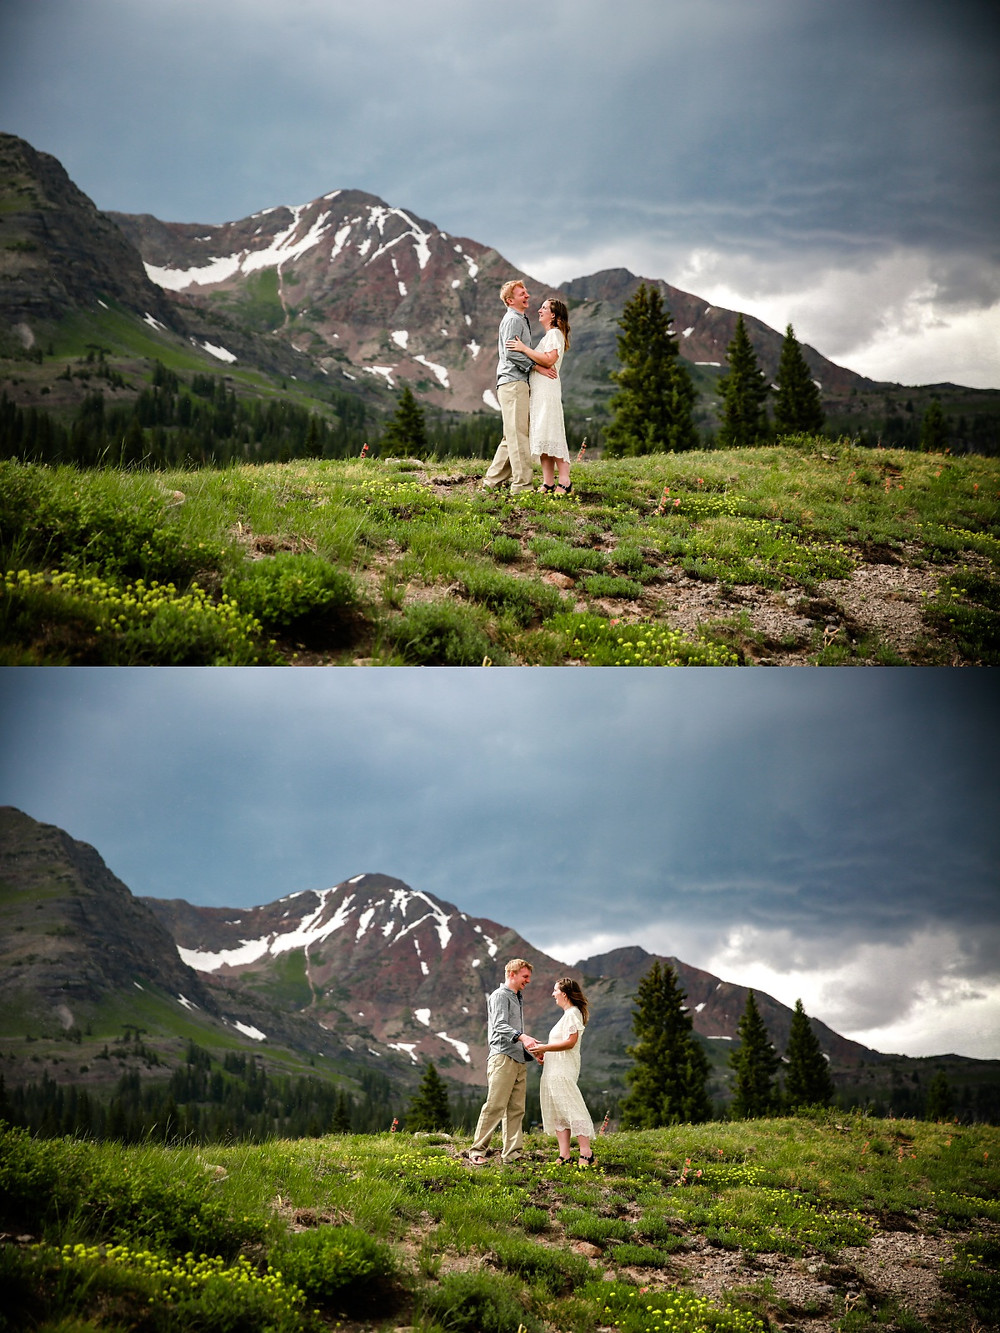 Vail Adventure Elopement Photographer